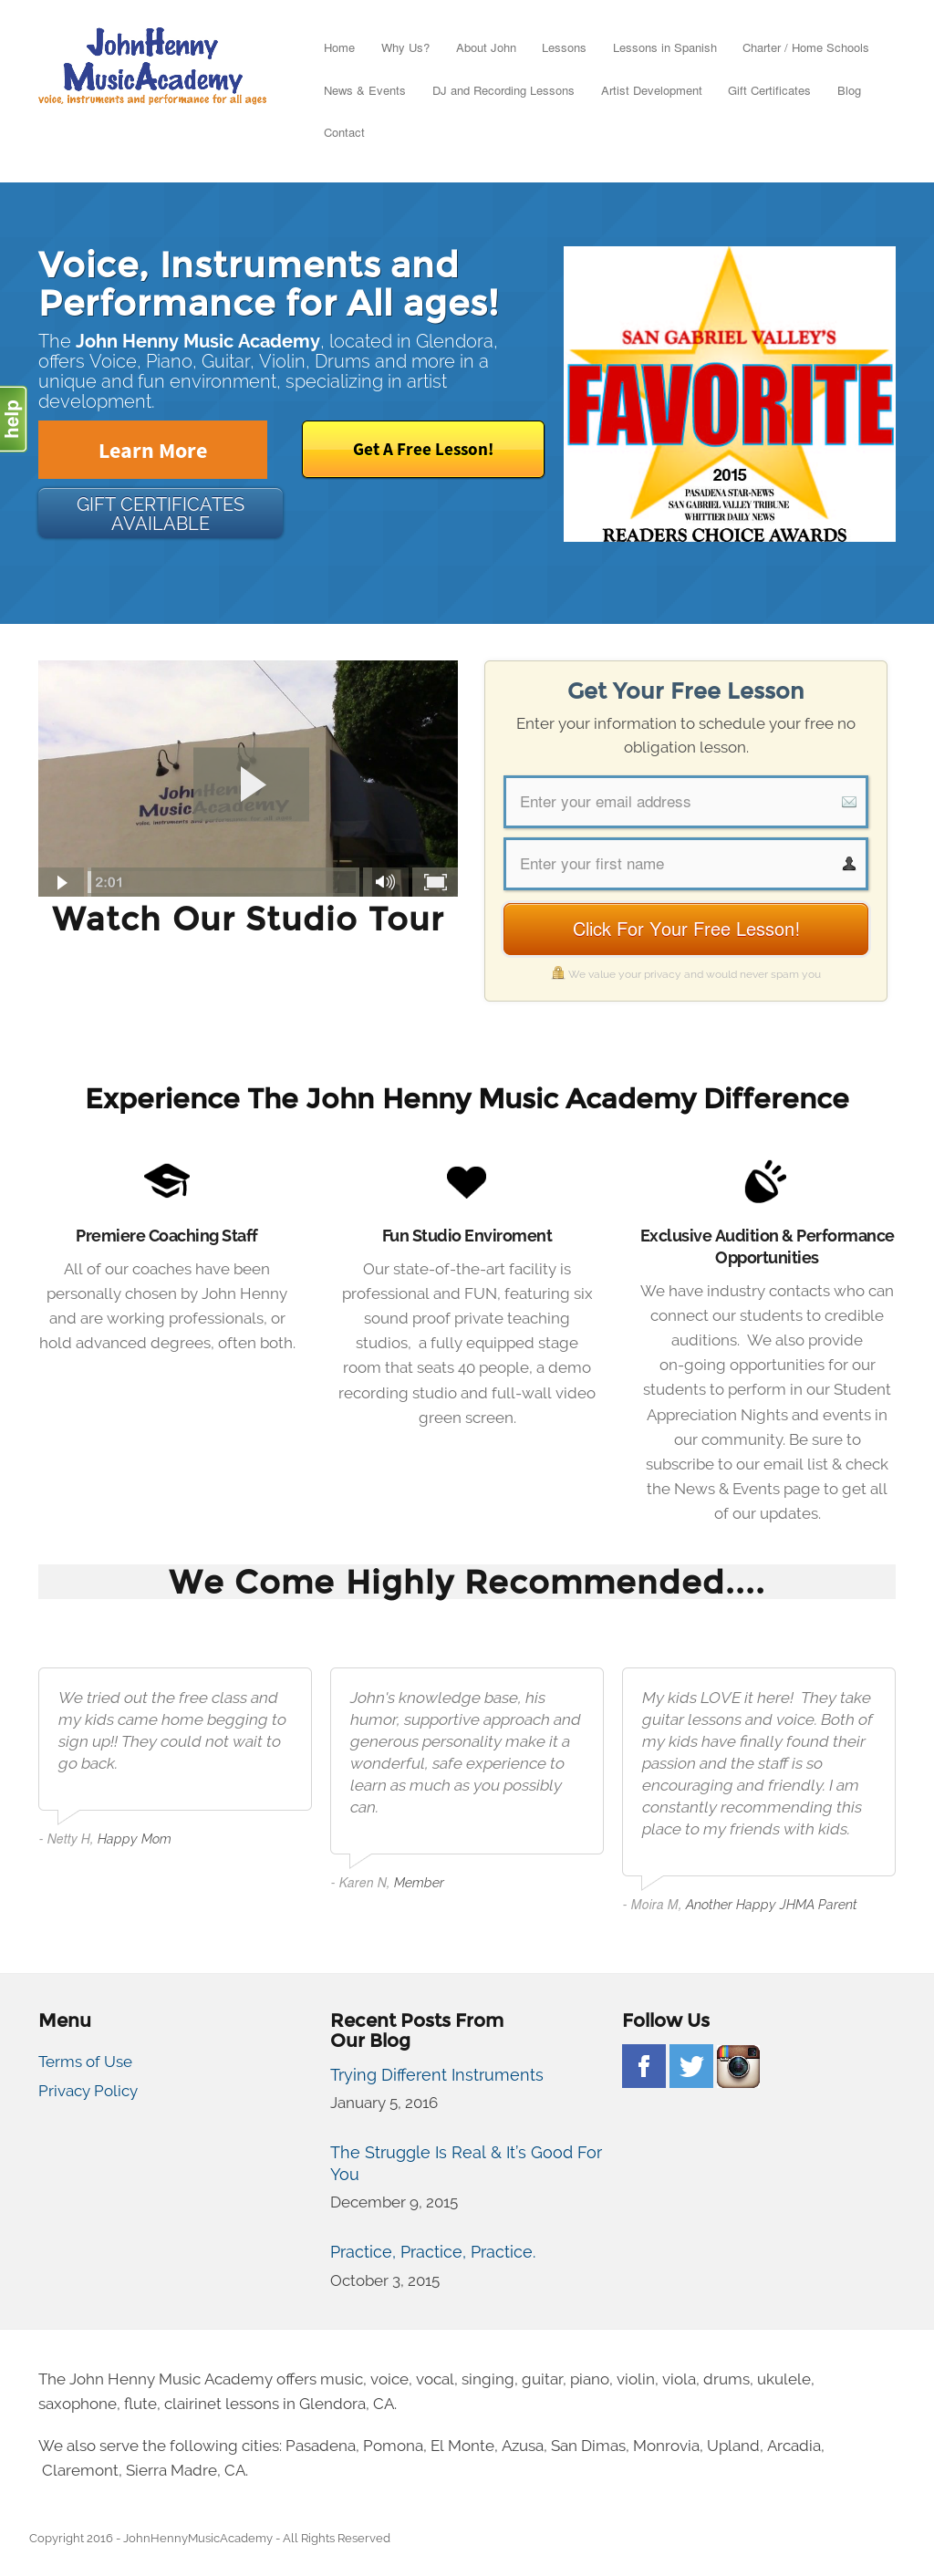 John Henny Music Academy Competitors, Revenue and Employees